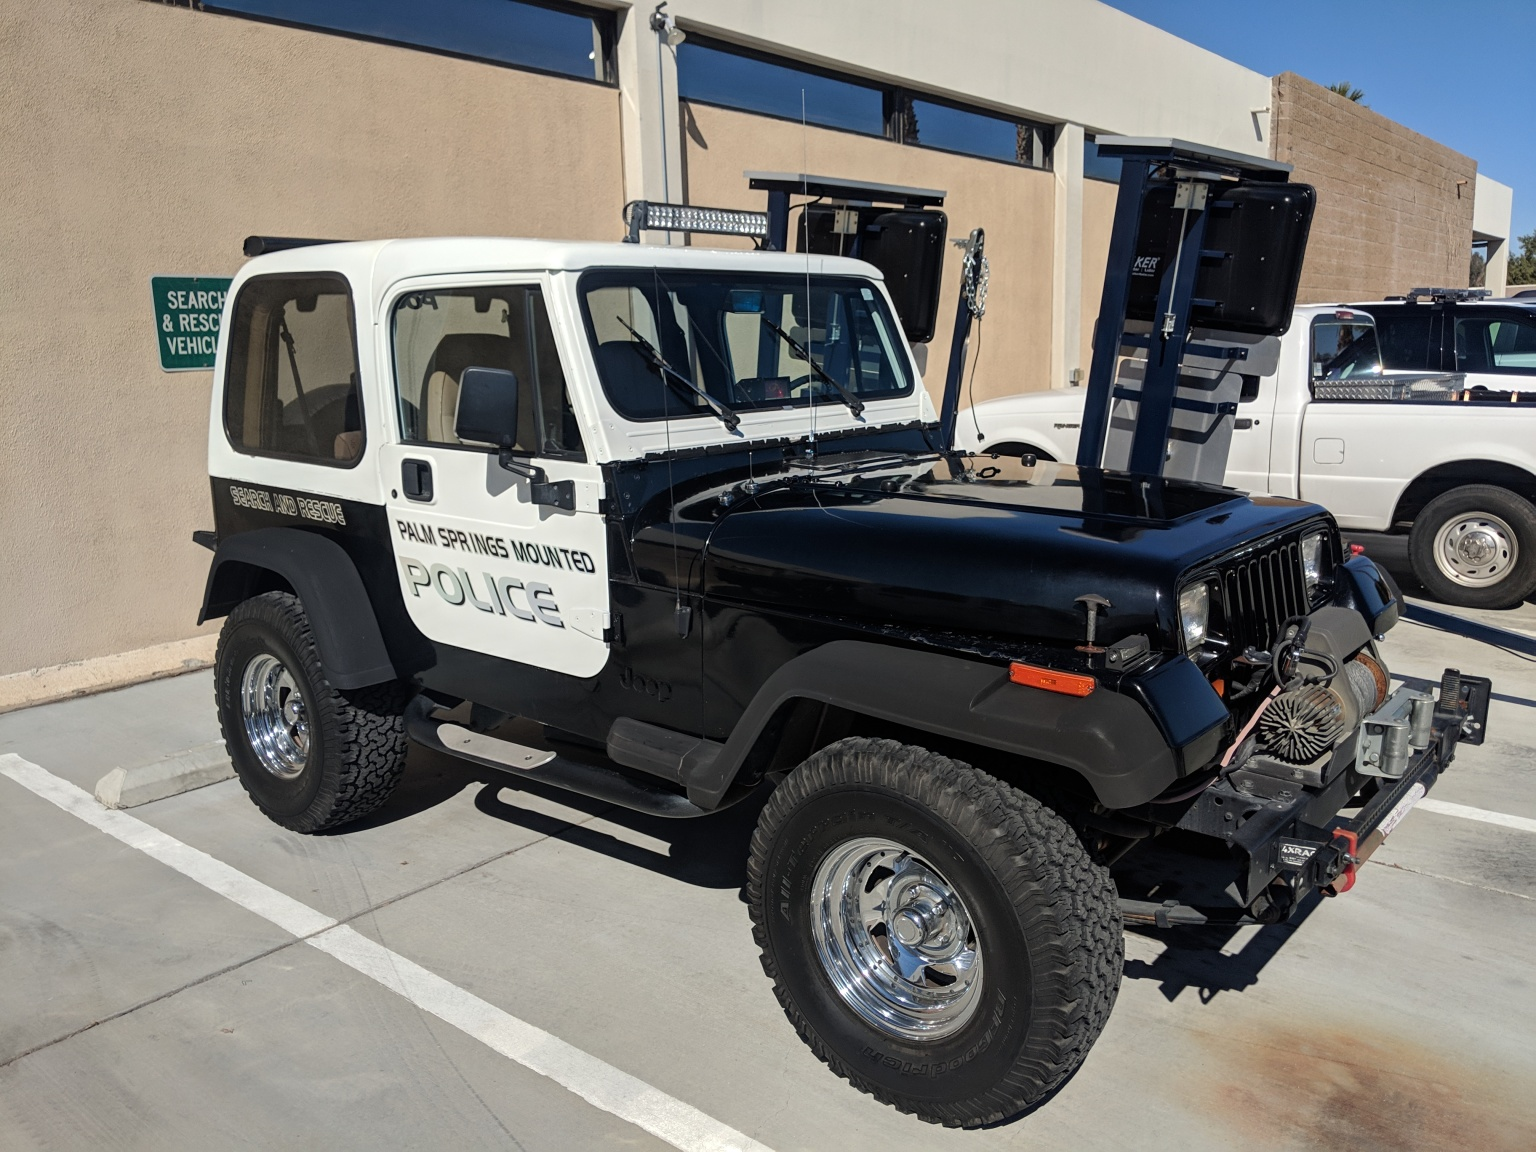 Palm Springs Mounted Police Asks Community's Help to Purchase Rescue Jeep